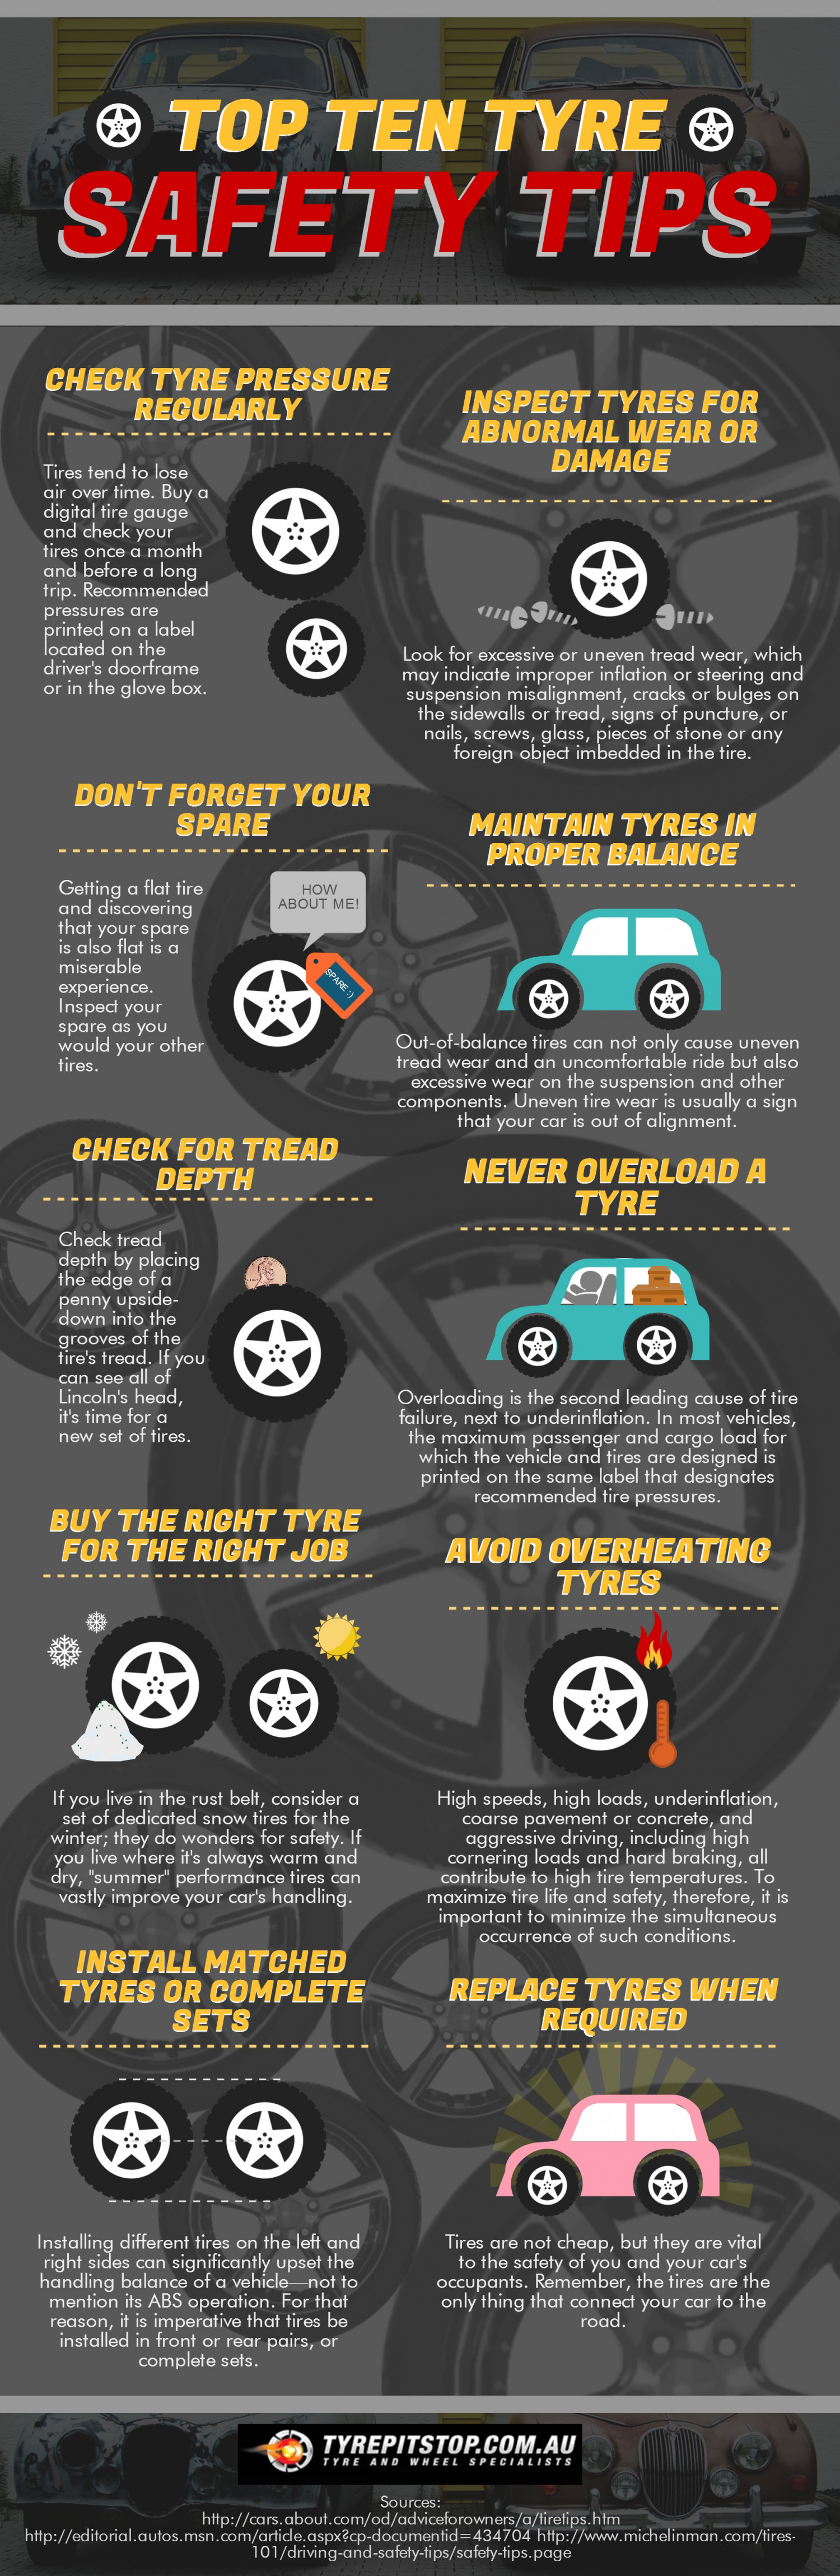 Top Ten Tyre Safety Tips Infographic